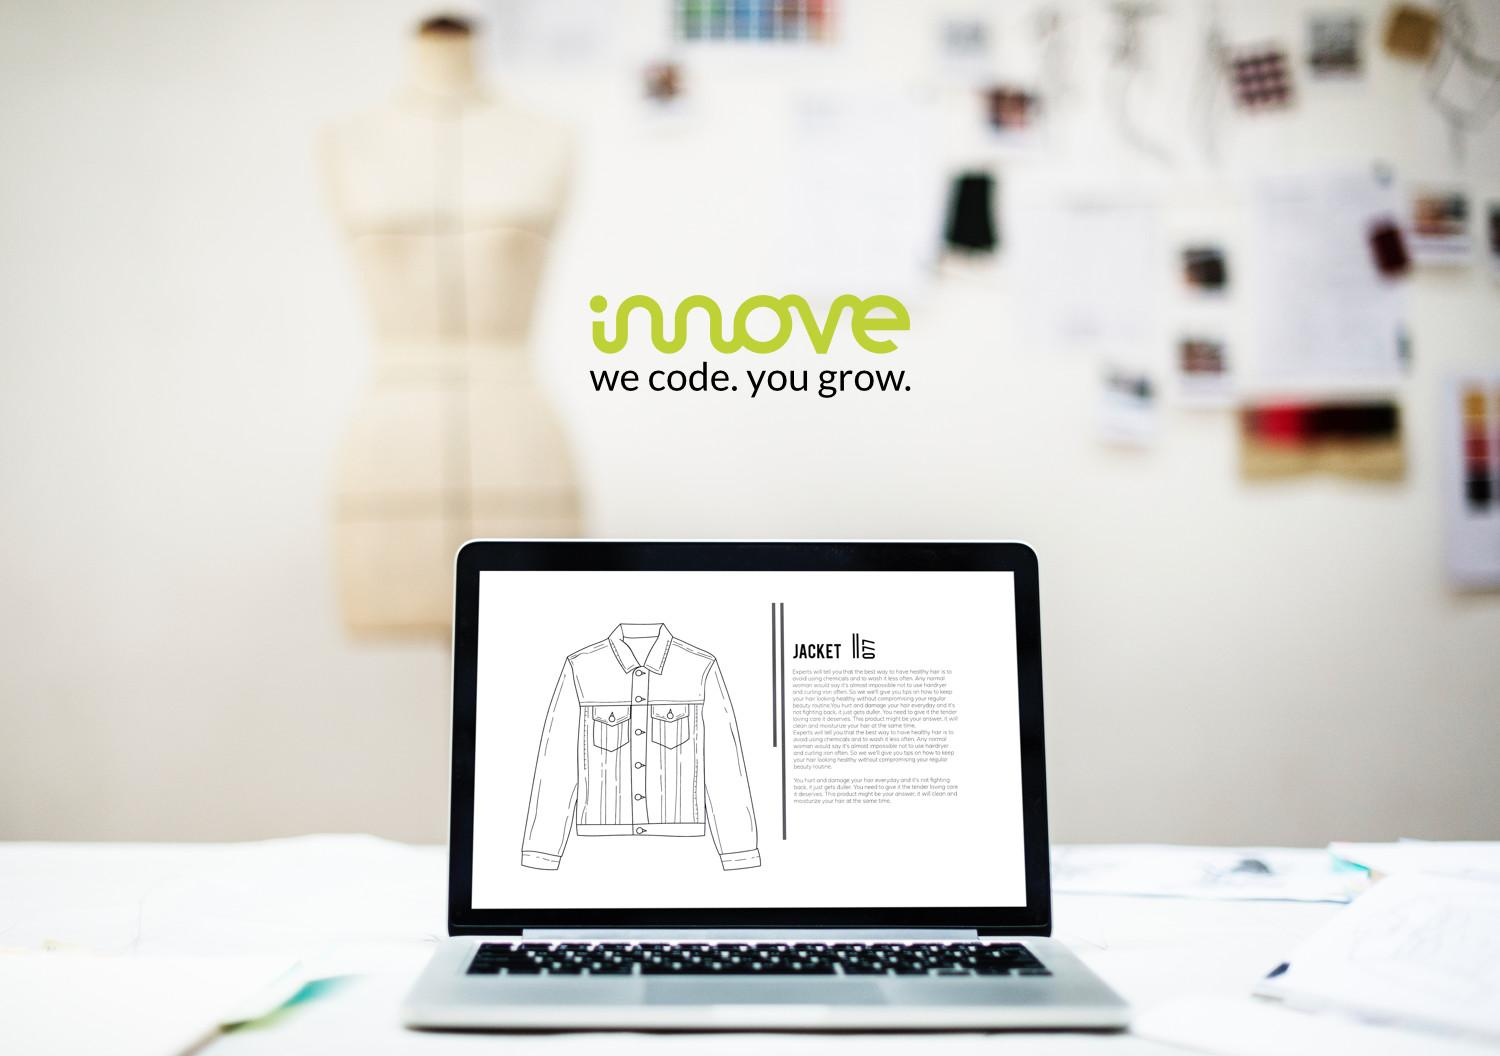 System integration for the fashion industry